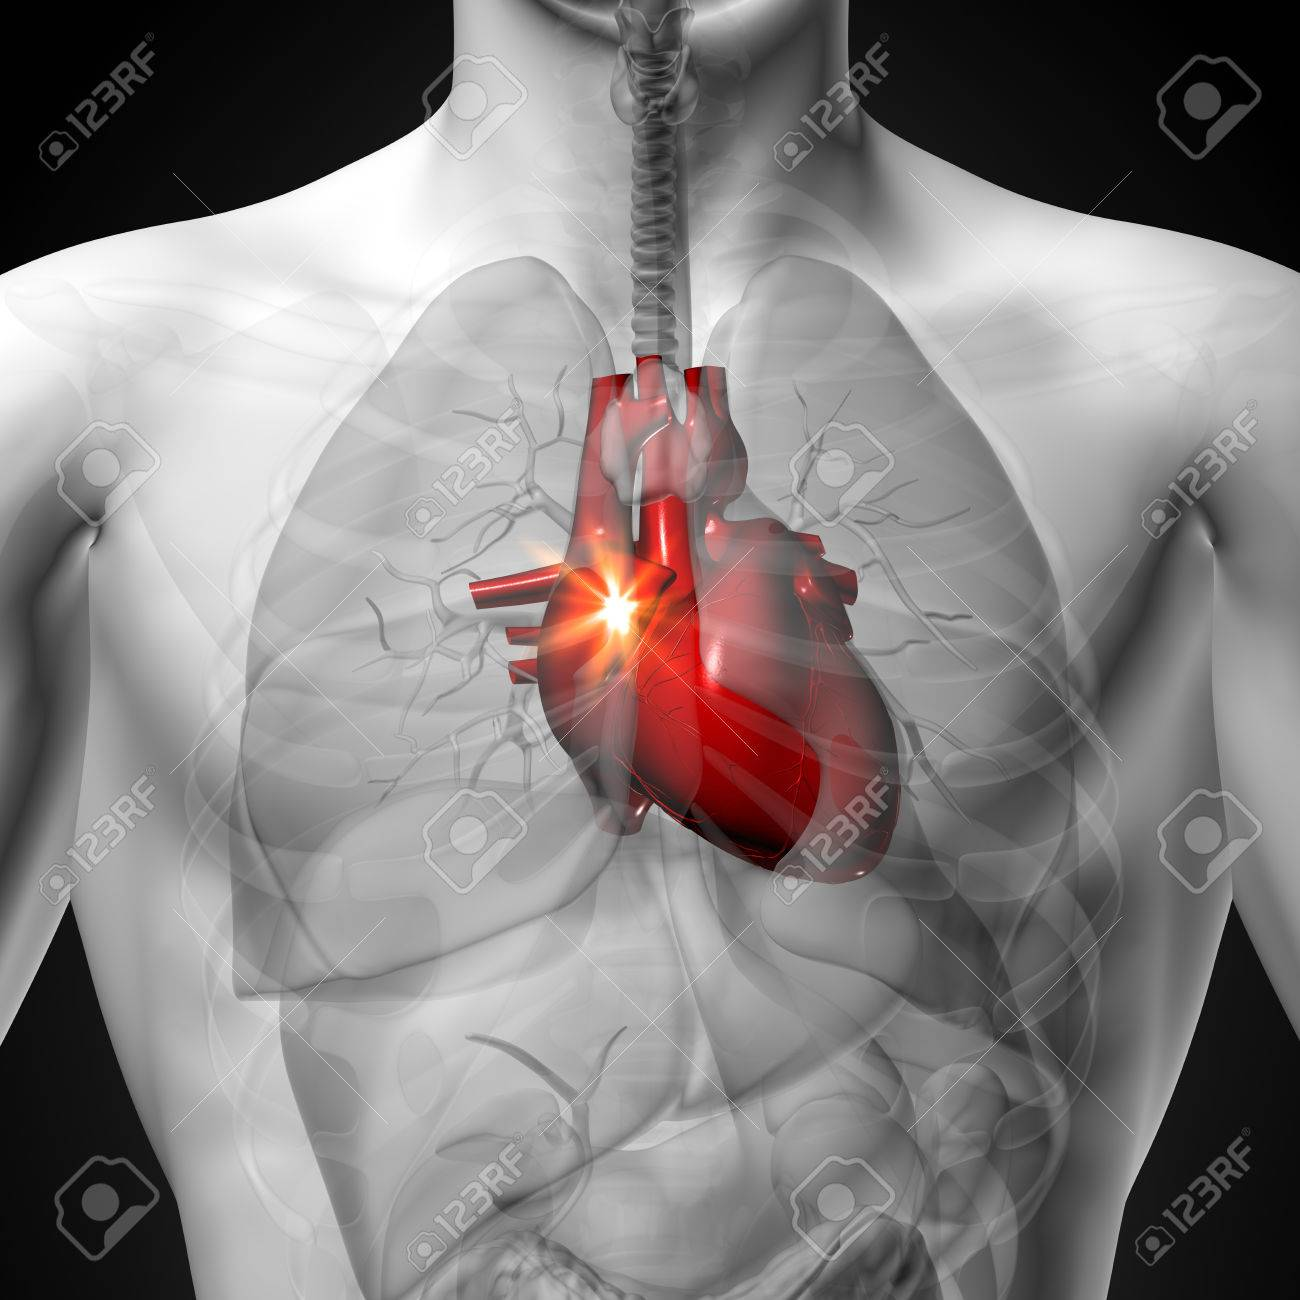 Heart Male Anatomy Of Human Organs X Ray View Stock Photo